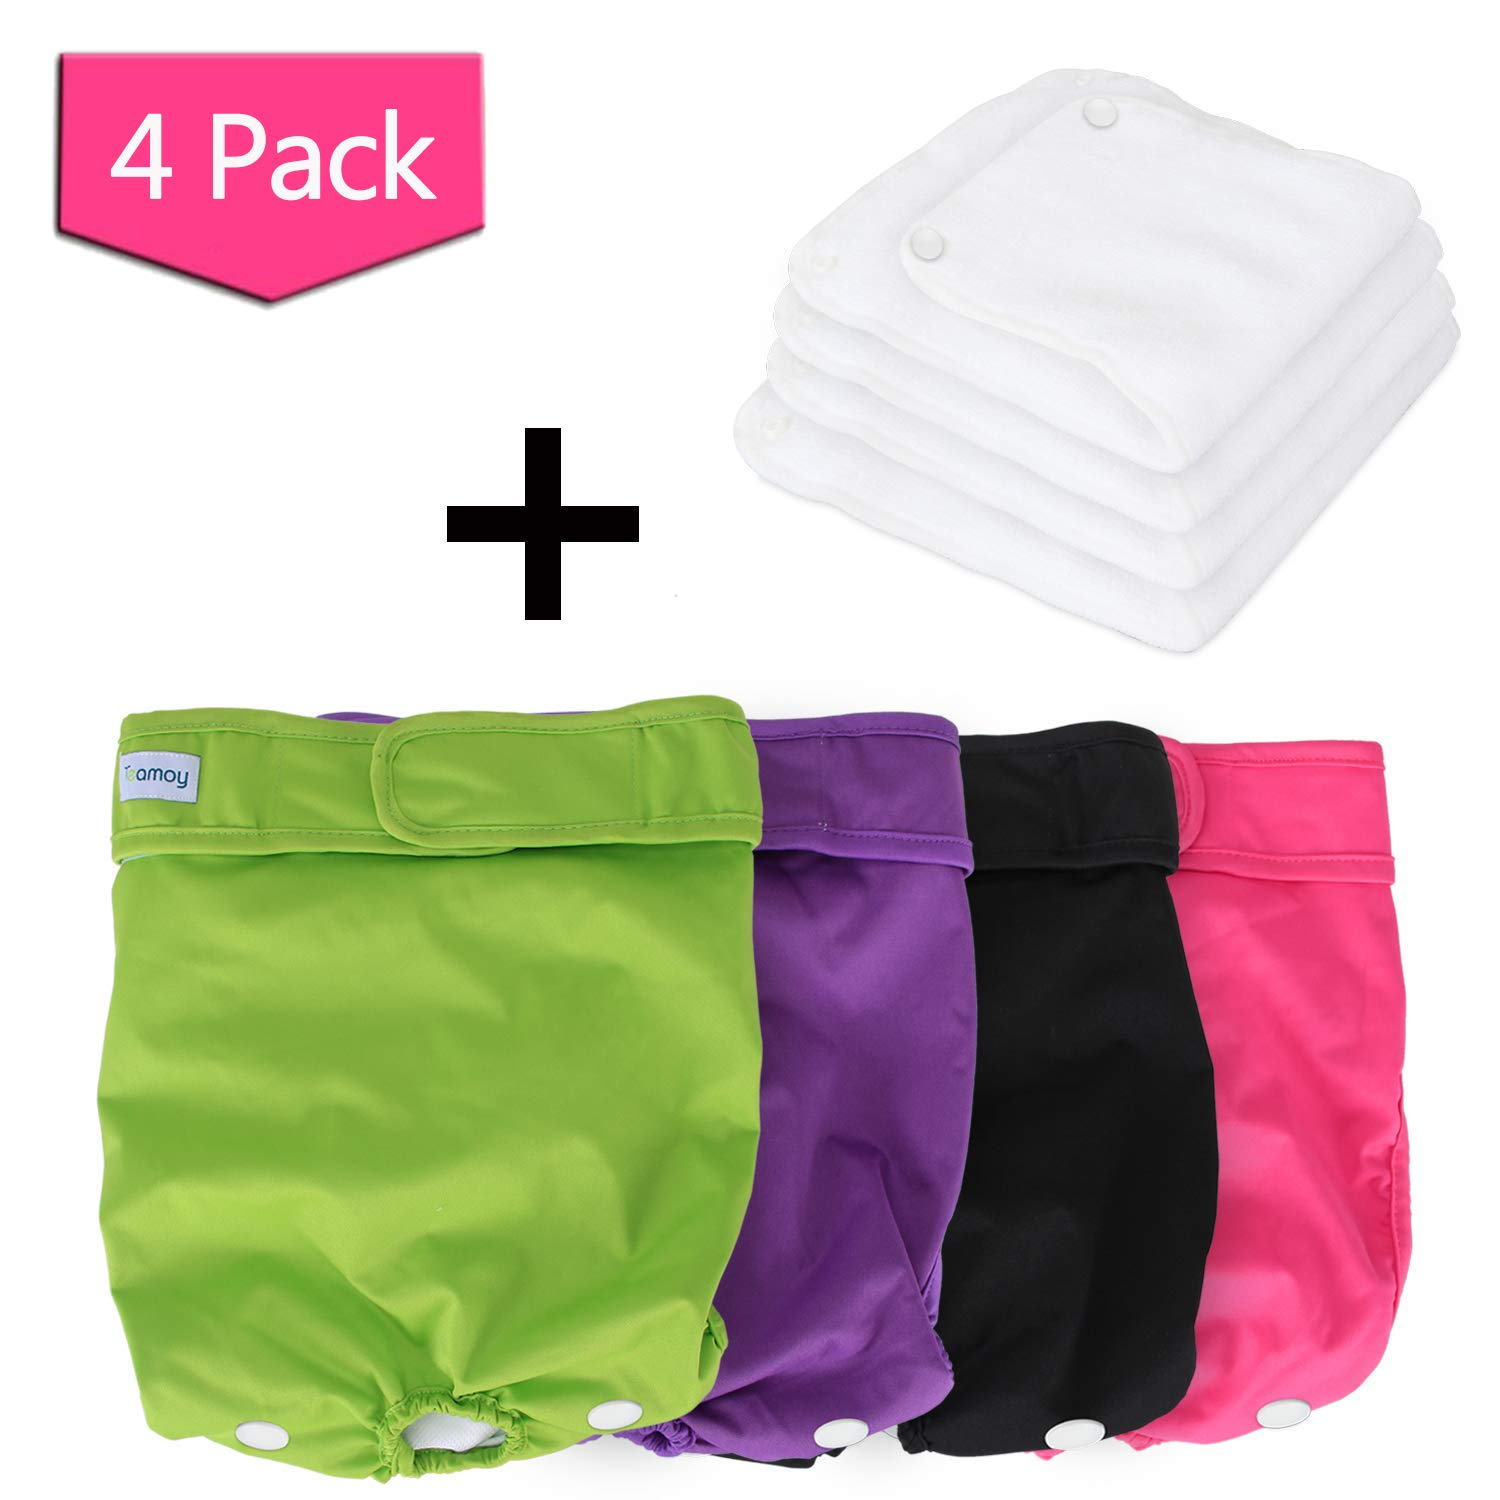 Black+ Purple+ Green+ pink Red (4pcs) XL(Fit 26\ Black+ Purple+ Green+ pink Red (4pcs) XL(Fit 26\ Teamoy Reusable Female Dog Diapers with Extra Removable Pads(Pack of 4), Washable Doggie Diaper Wraps for Female Dogs, Super-Absorbent, Comfortable and Styli